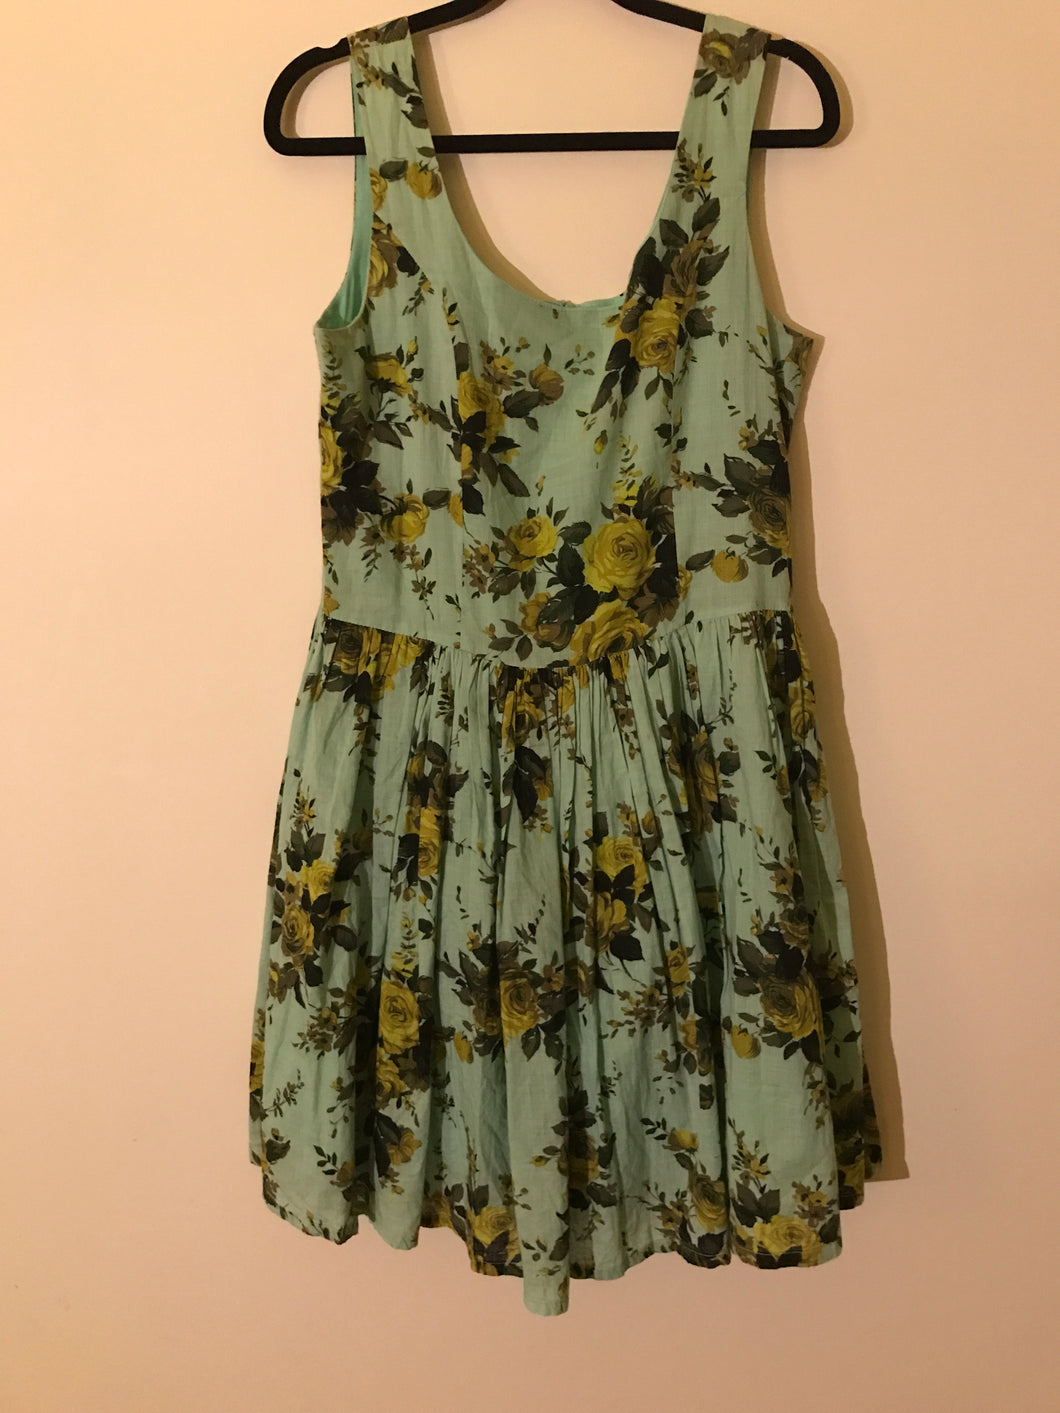 Revival retro mint floral dress Size 12